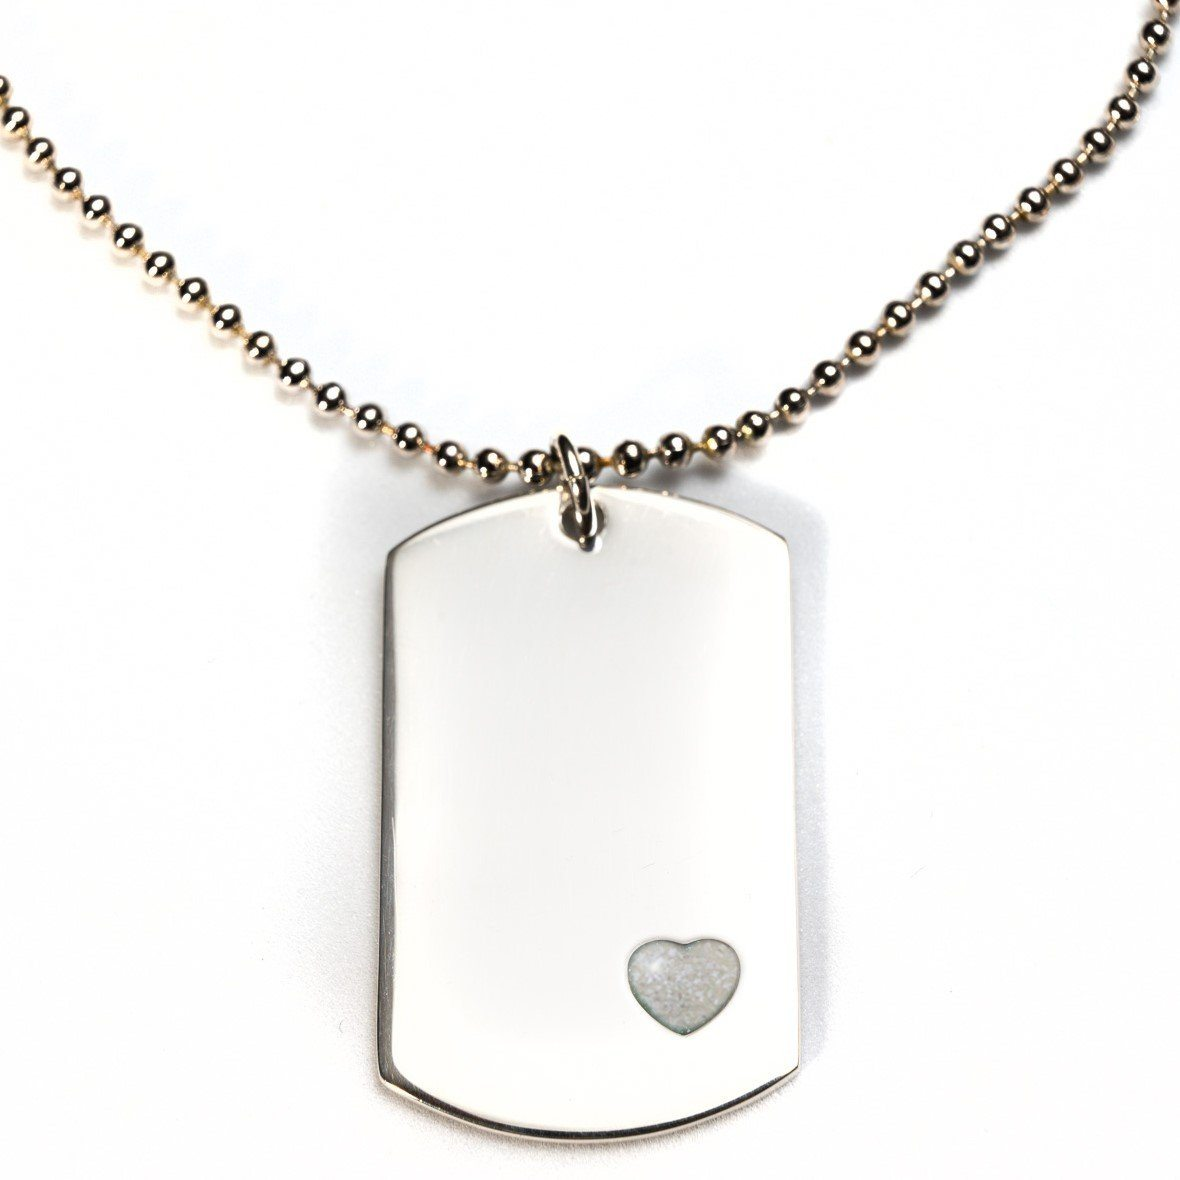 Sterling-Silver Dog Tag with Everence Inlay - Large Everence Pearl